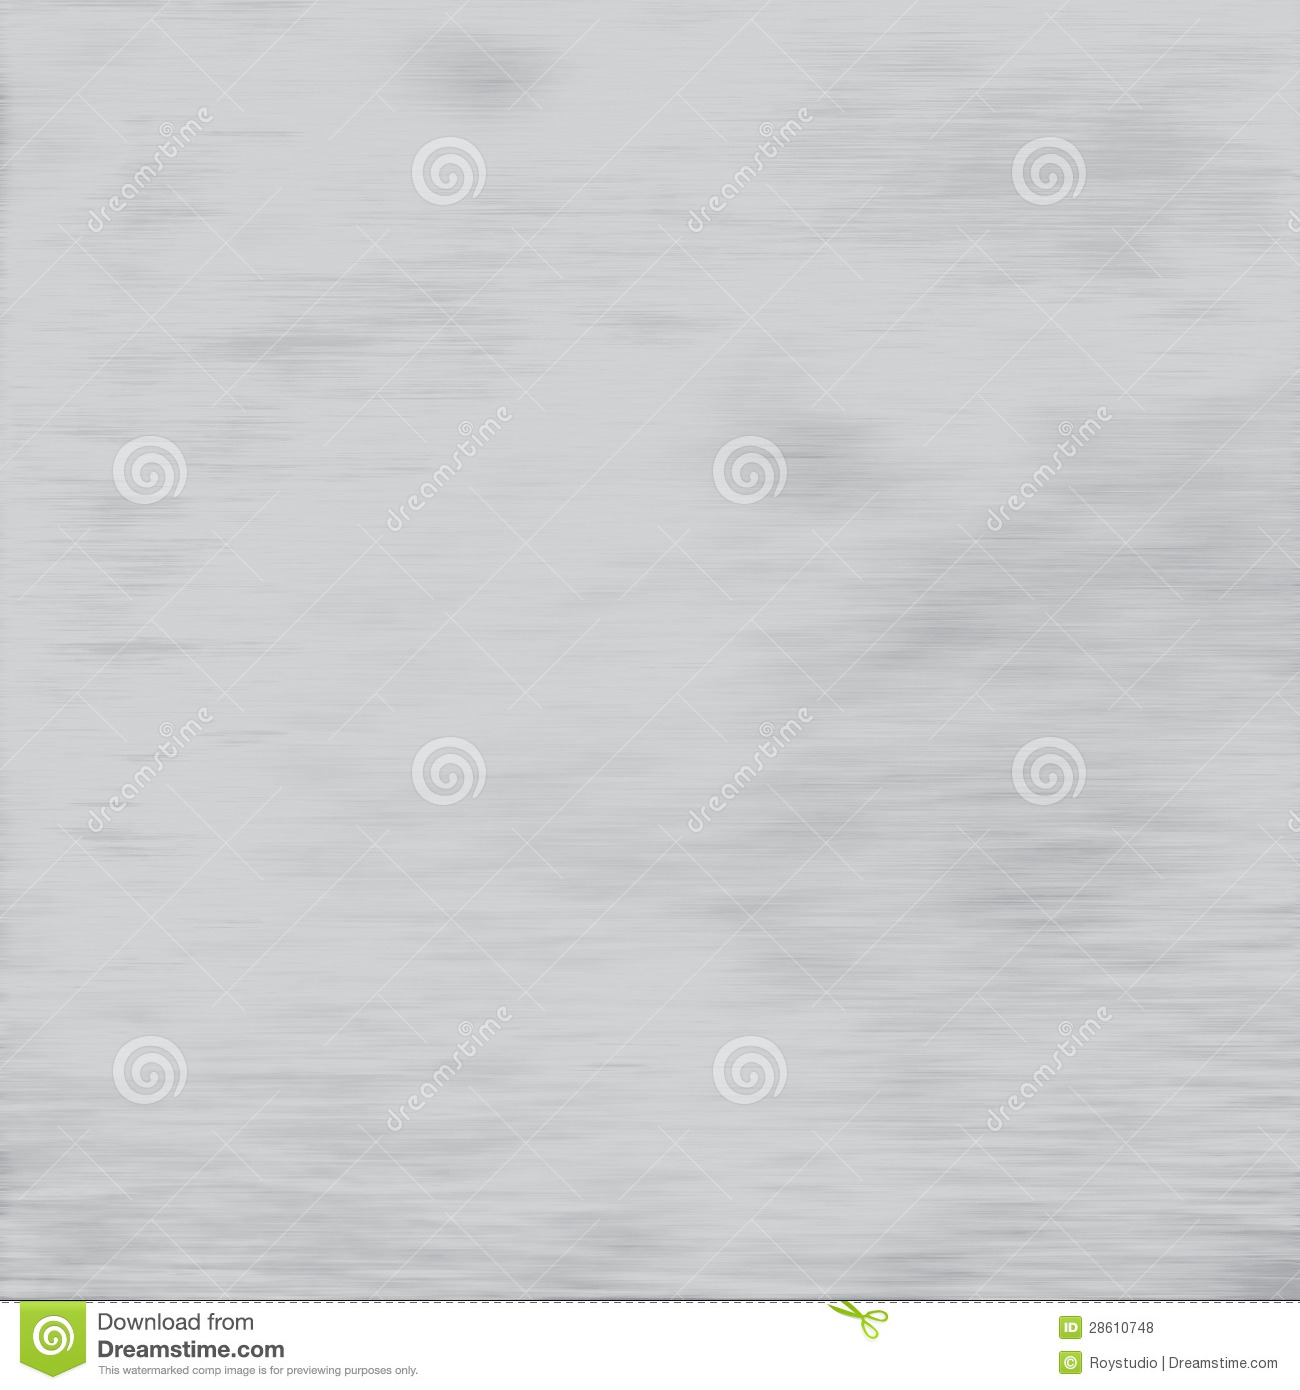 White paper background canvas texture horizontal stripe pattern